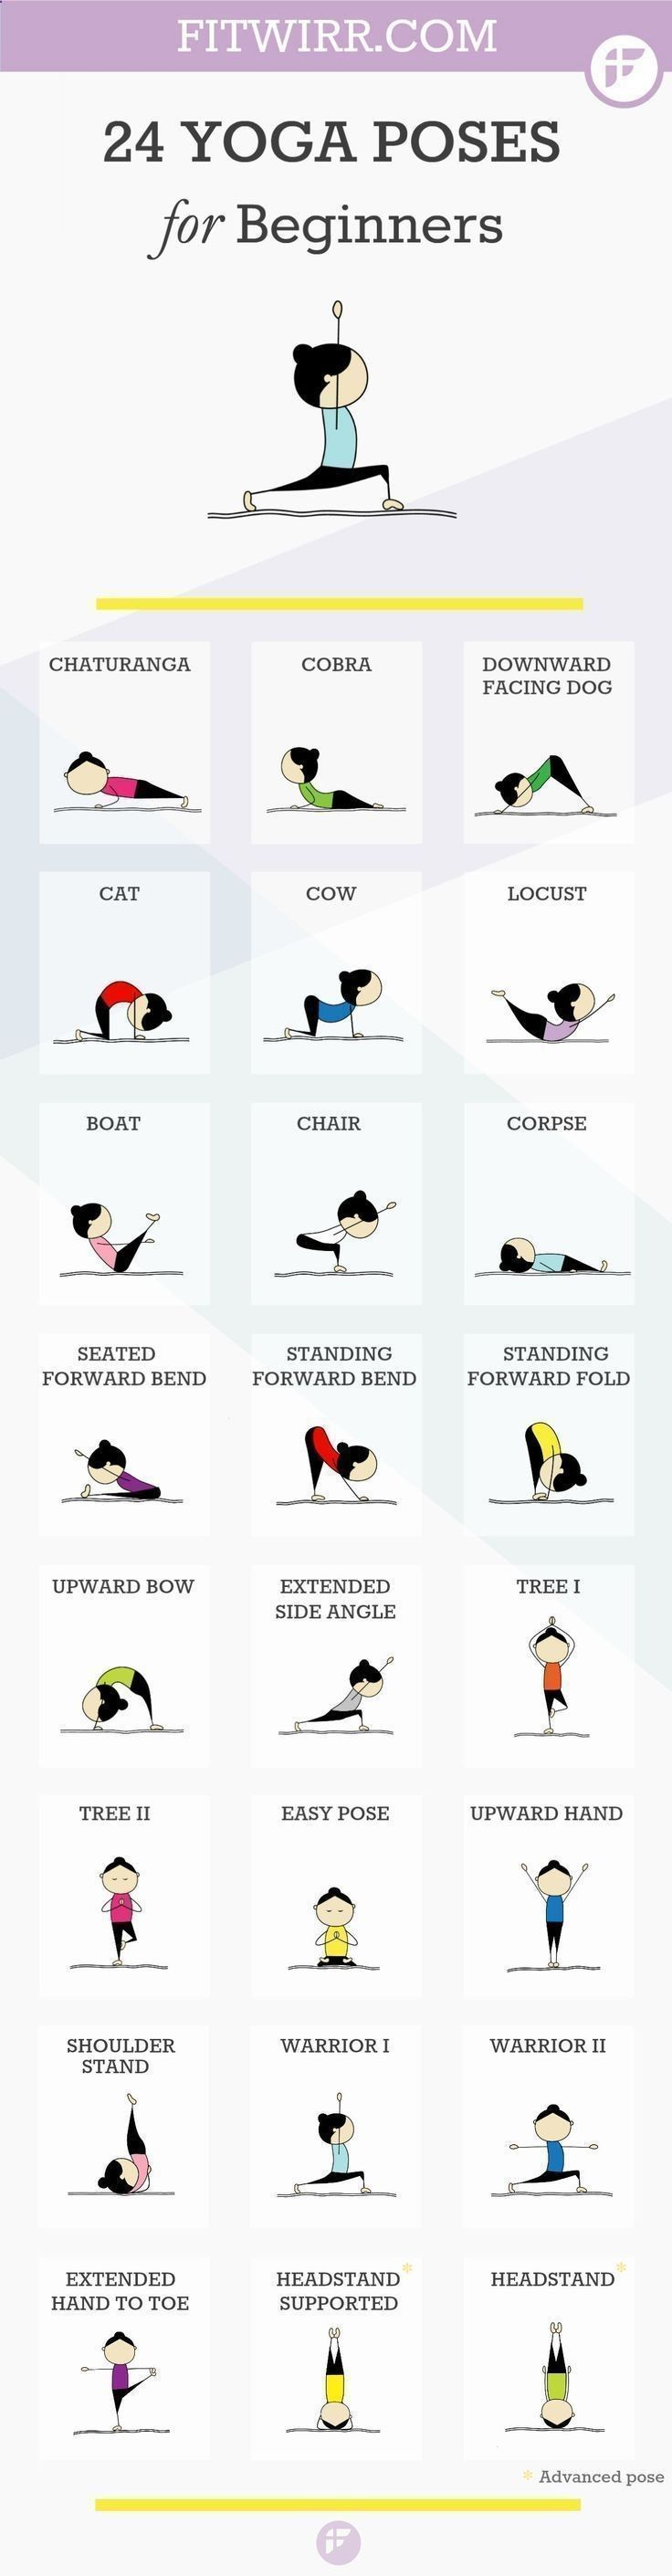 "Program Weight Loss - 24 Yoga poses for beginners. Namaste :-). #yoga #meditation #health amzn.to/2stx5H7 For starters, the E Factor Diet is an online weight-loss program. The ingredients include ""simple real foods"" found at local grocery stores. #yogameditation"